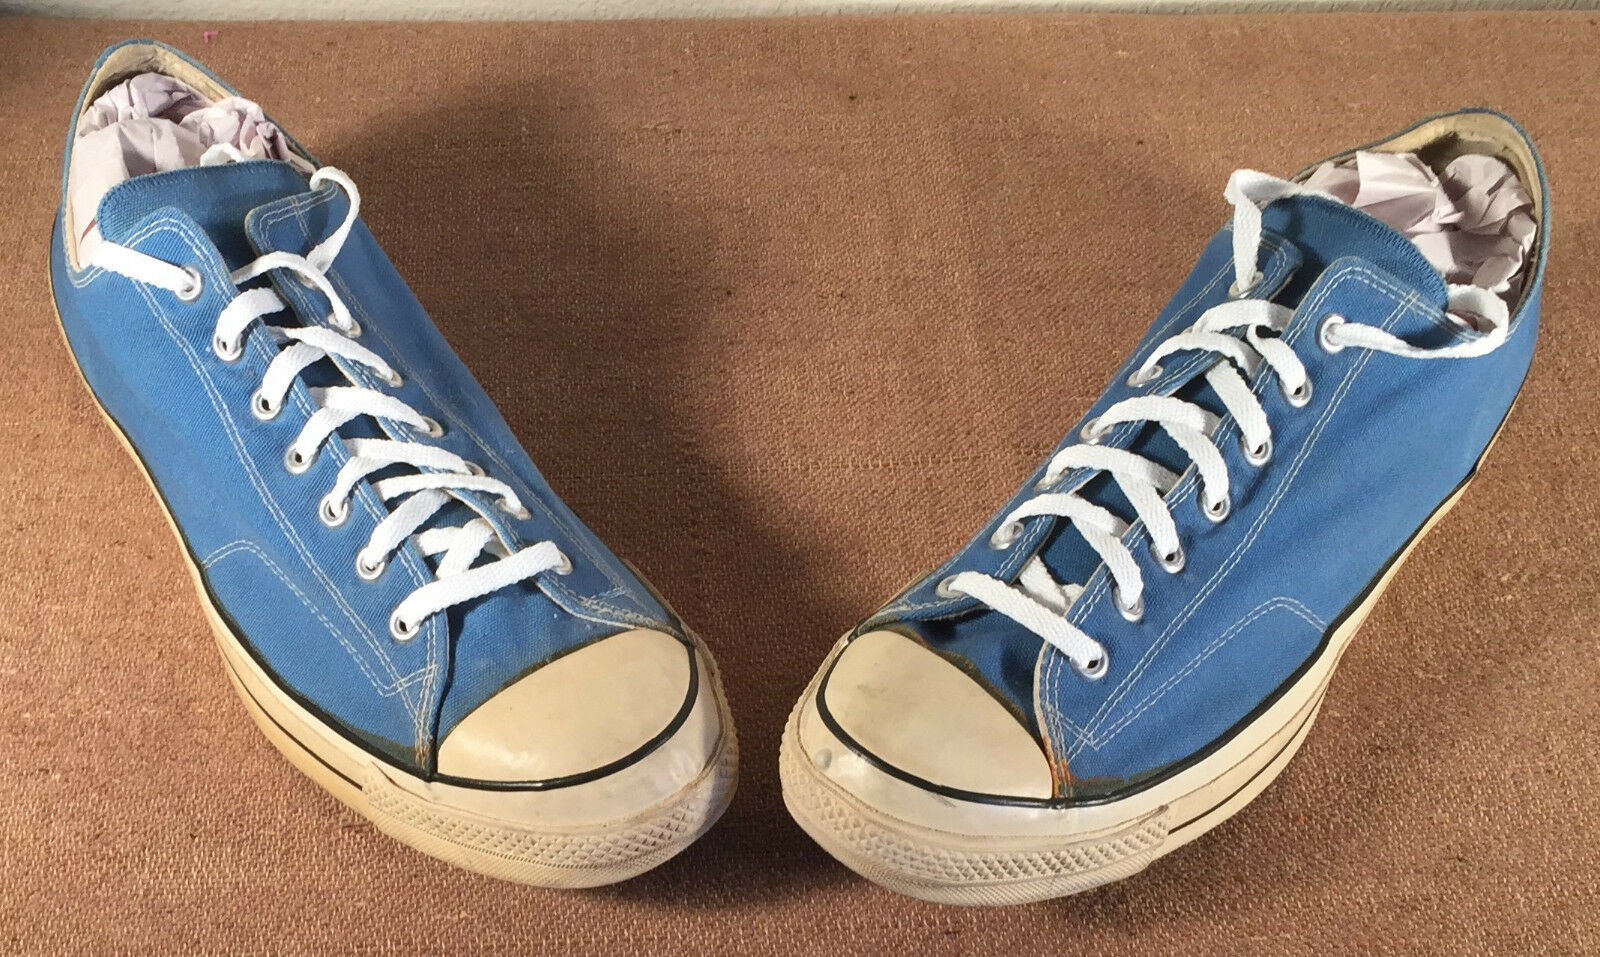 Size 16 Converse Chuck Taylor BLACK LABEL Mens Sneakers shoes blueee USA